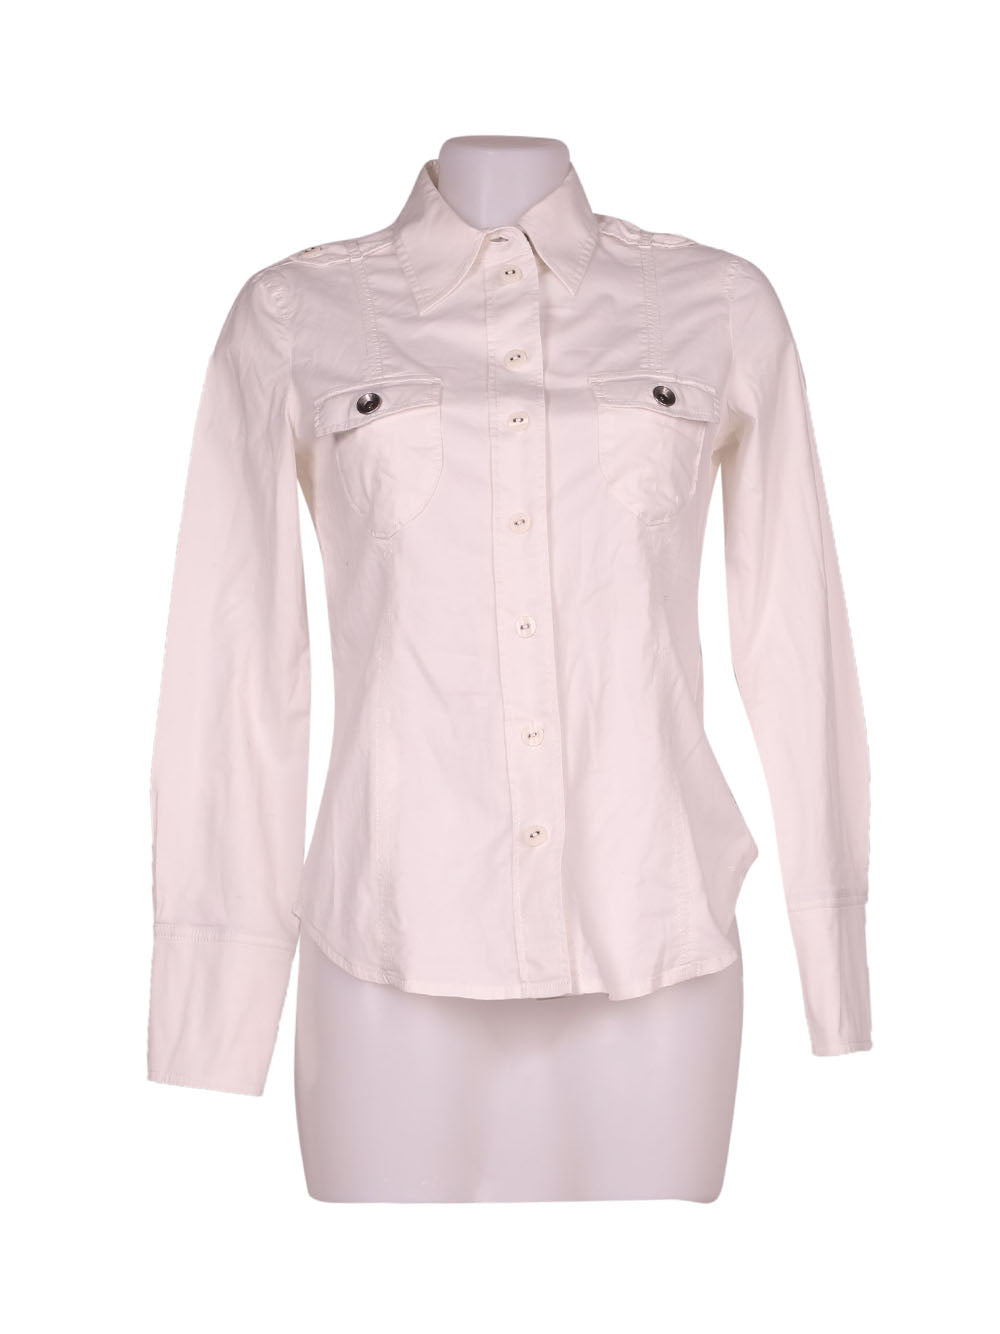 Front photo of Preloved Esprit White Woman's shirt - size 8/S